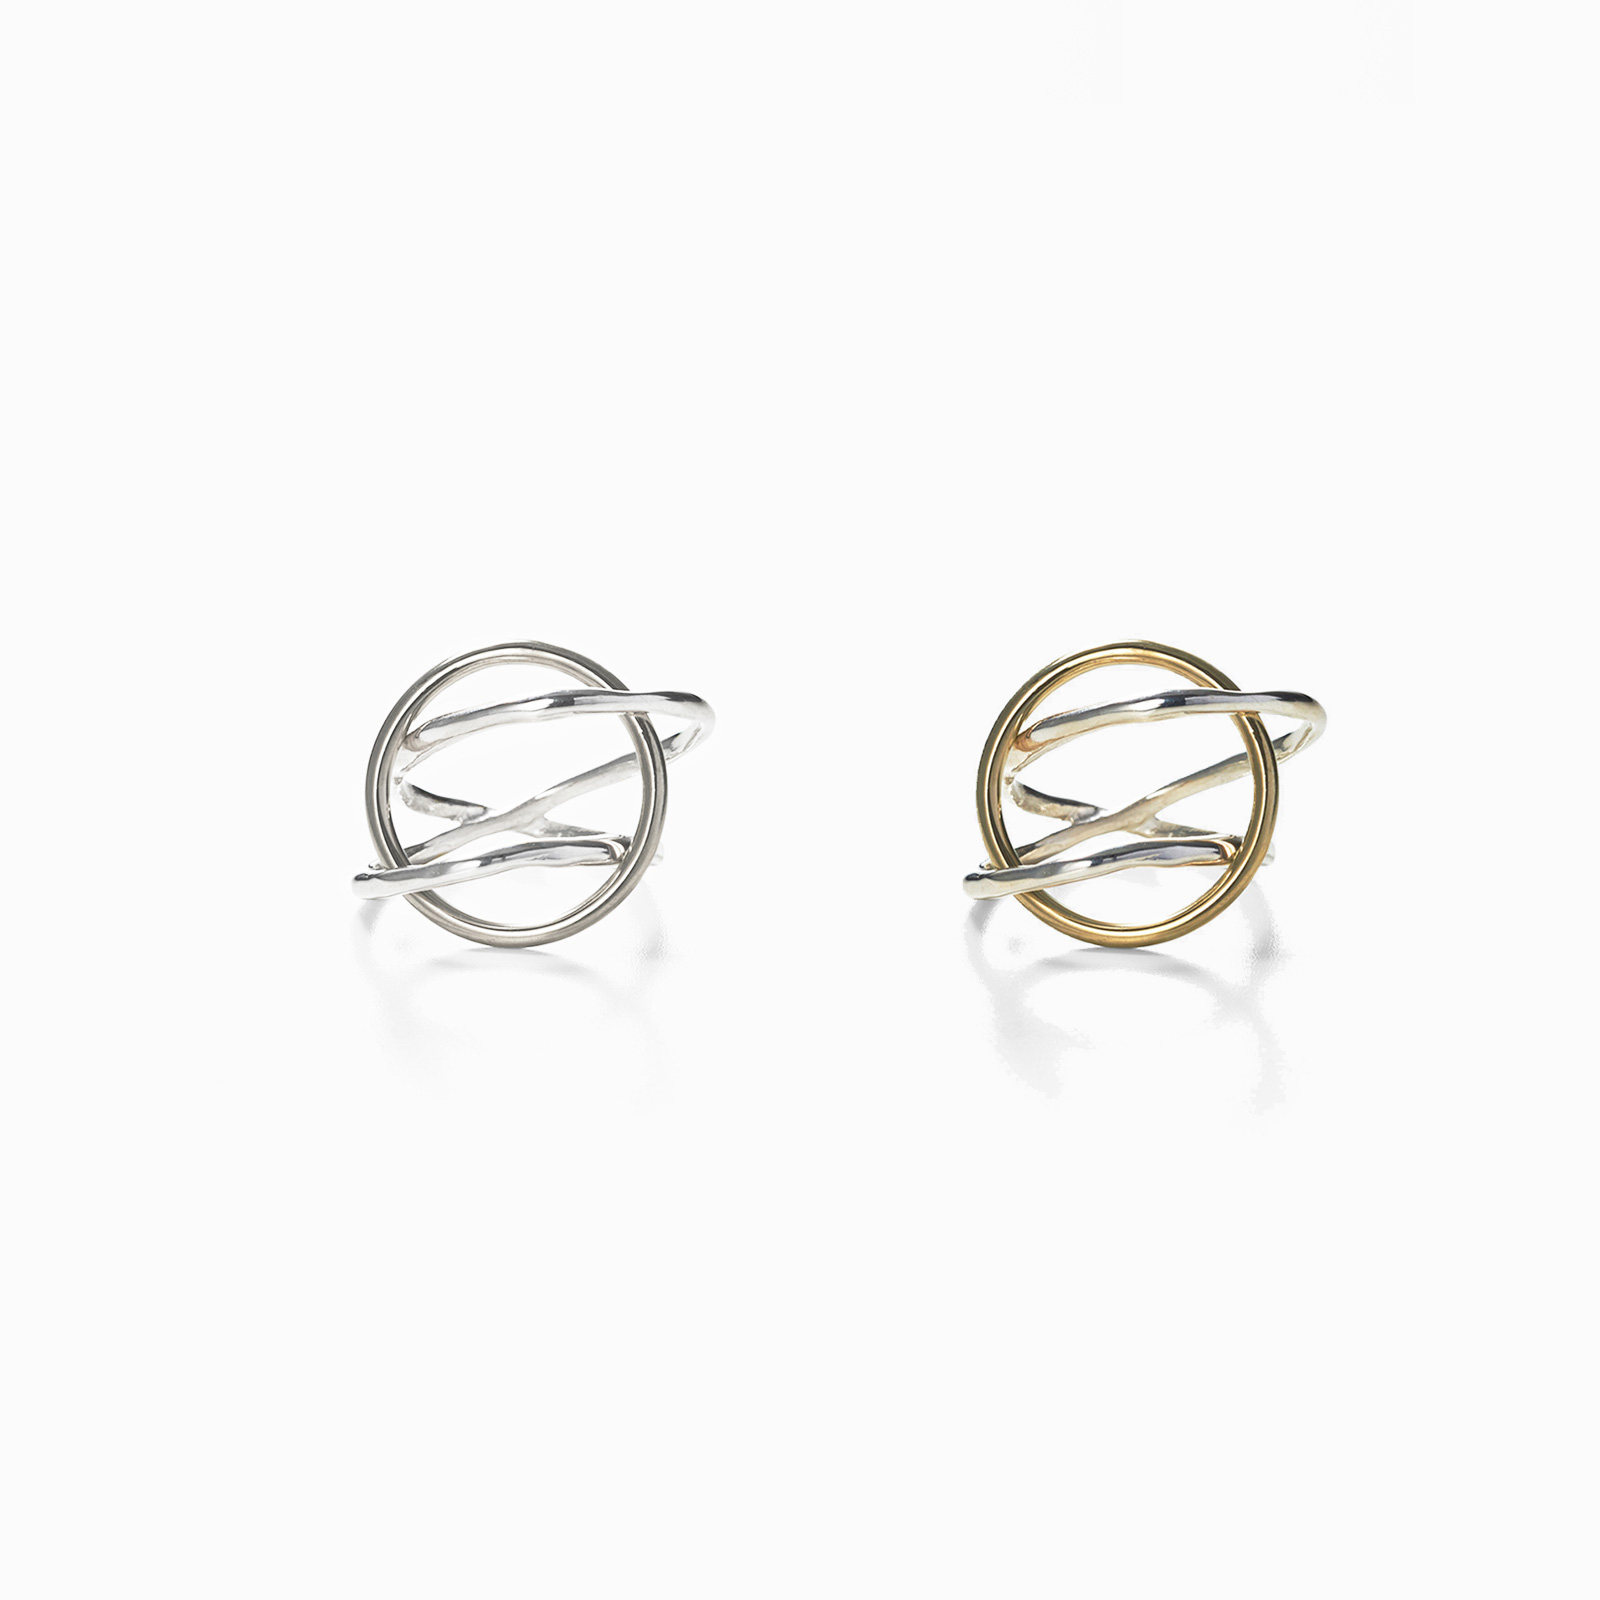 Three Circle Ring in Silver or Gold + Silver by ALT-S